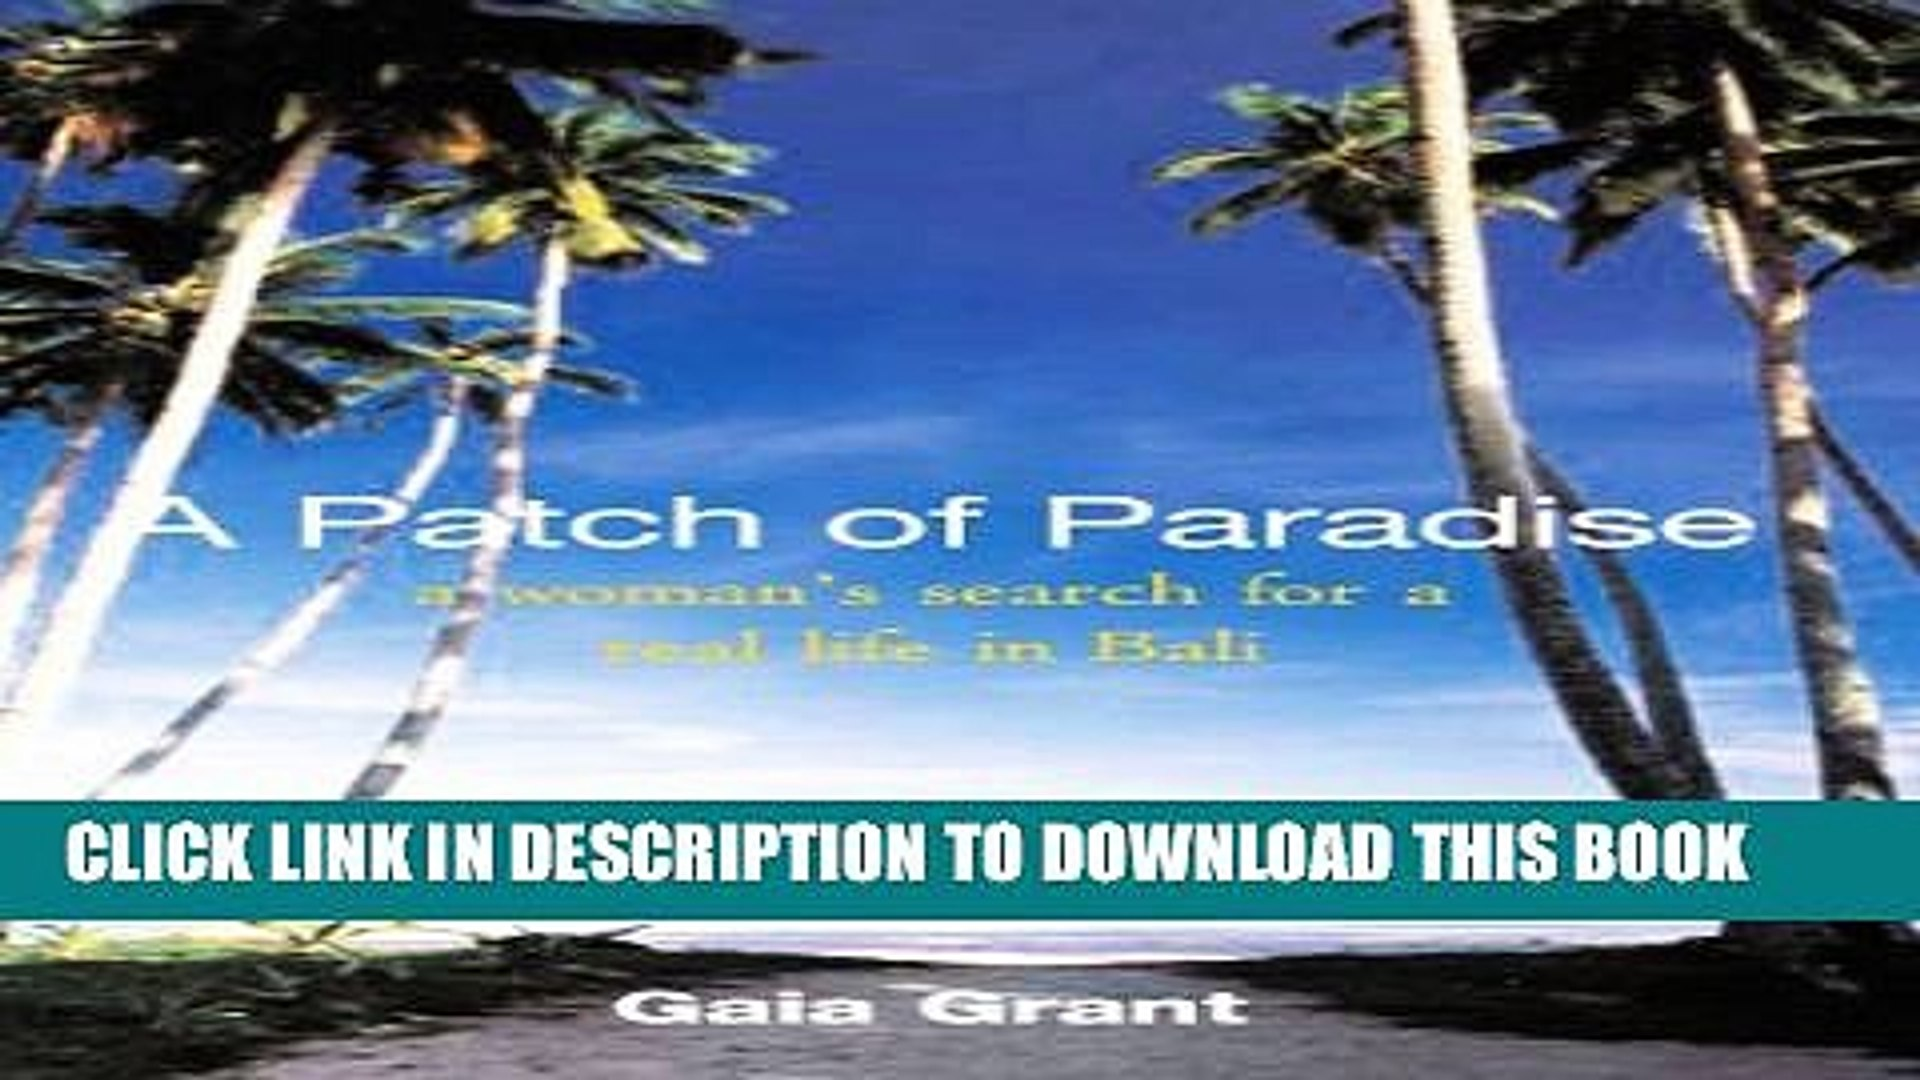 [PDF] A Patch of Paradise: A woman s search for a real life in Bali. Exclusive Full Ebook